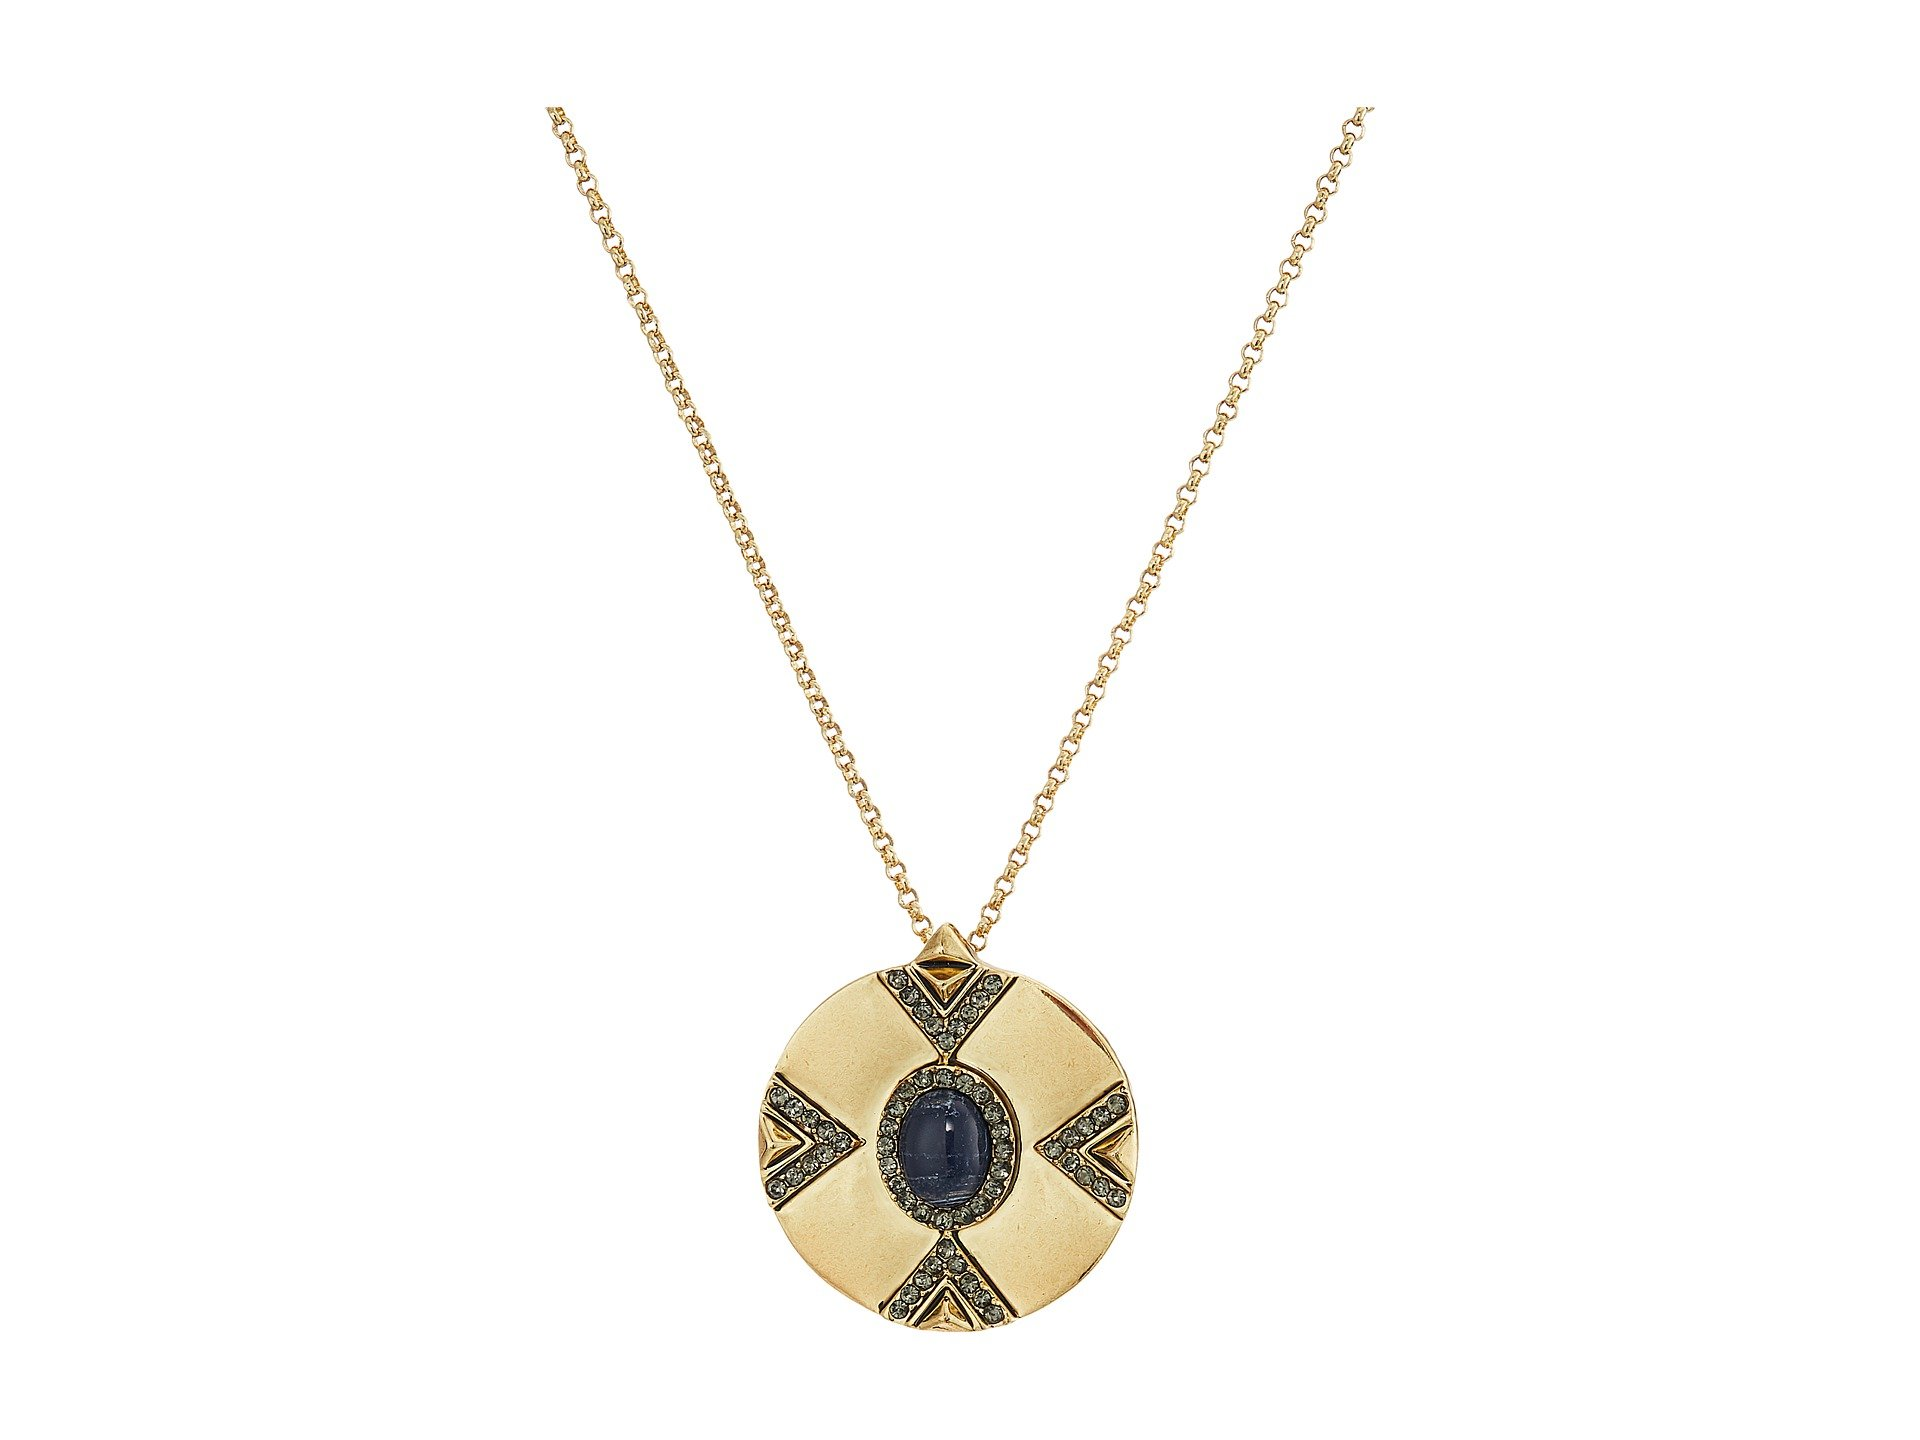 House of harlow 1960 mini sunburst pendant necklace shipped free house of harlow 1960 dorelia coin necklace mozeypictures Gallery